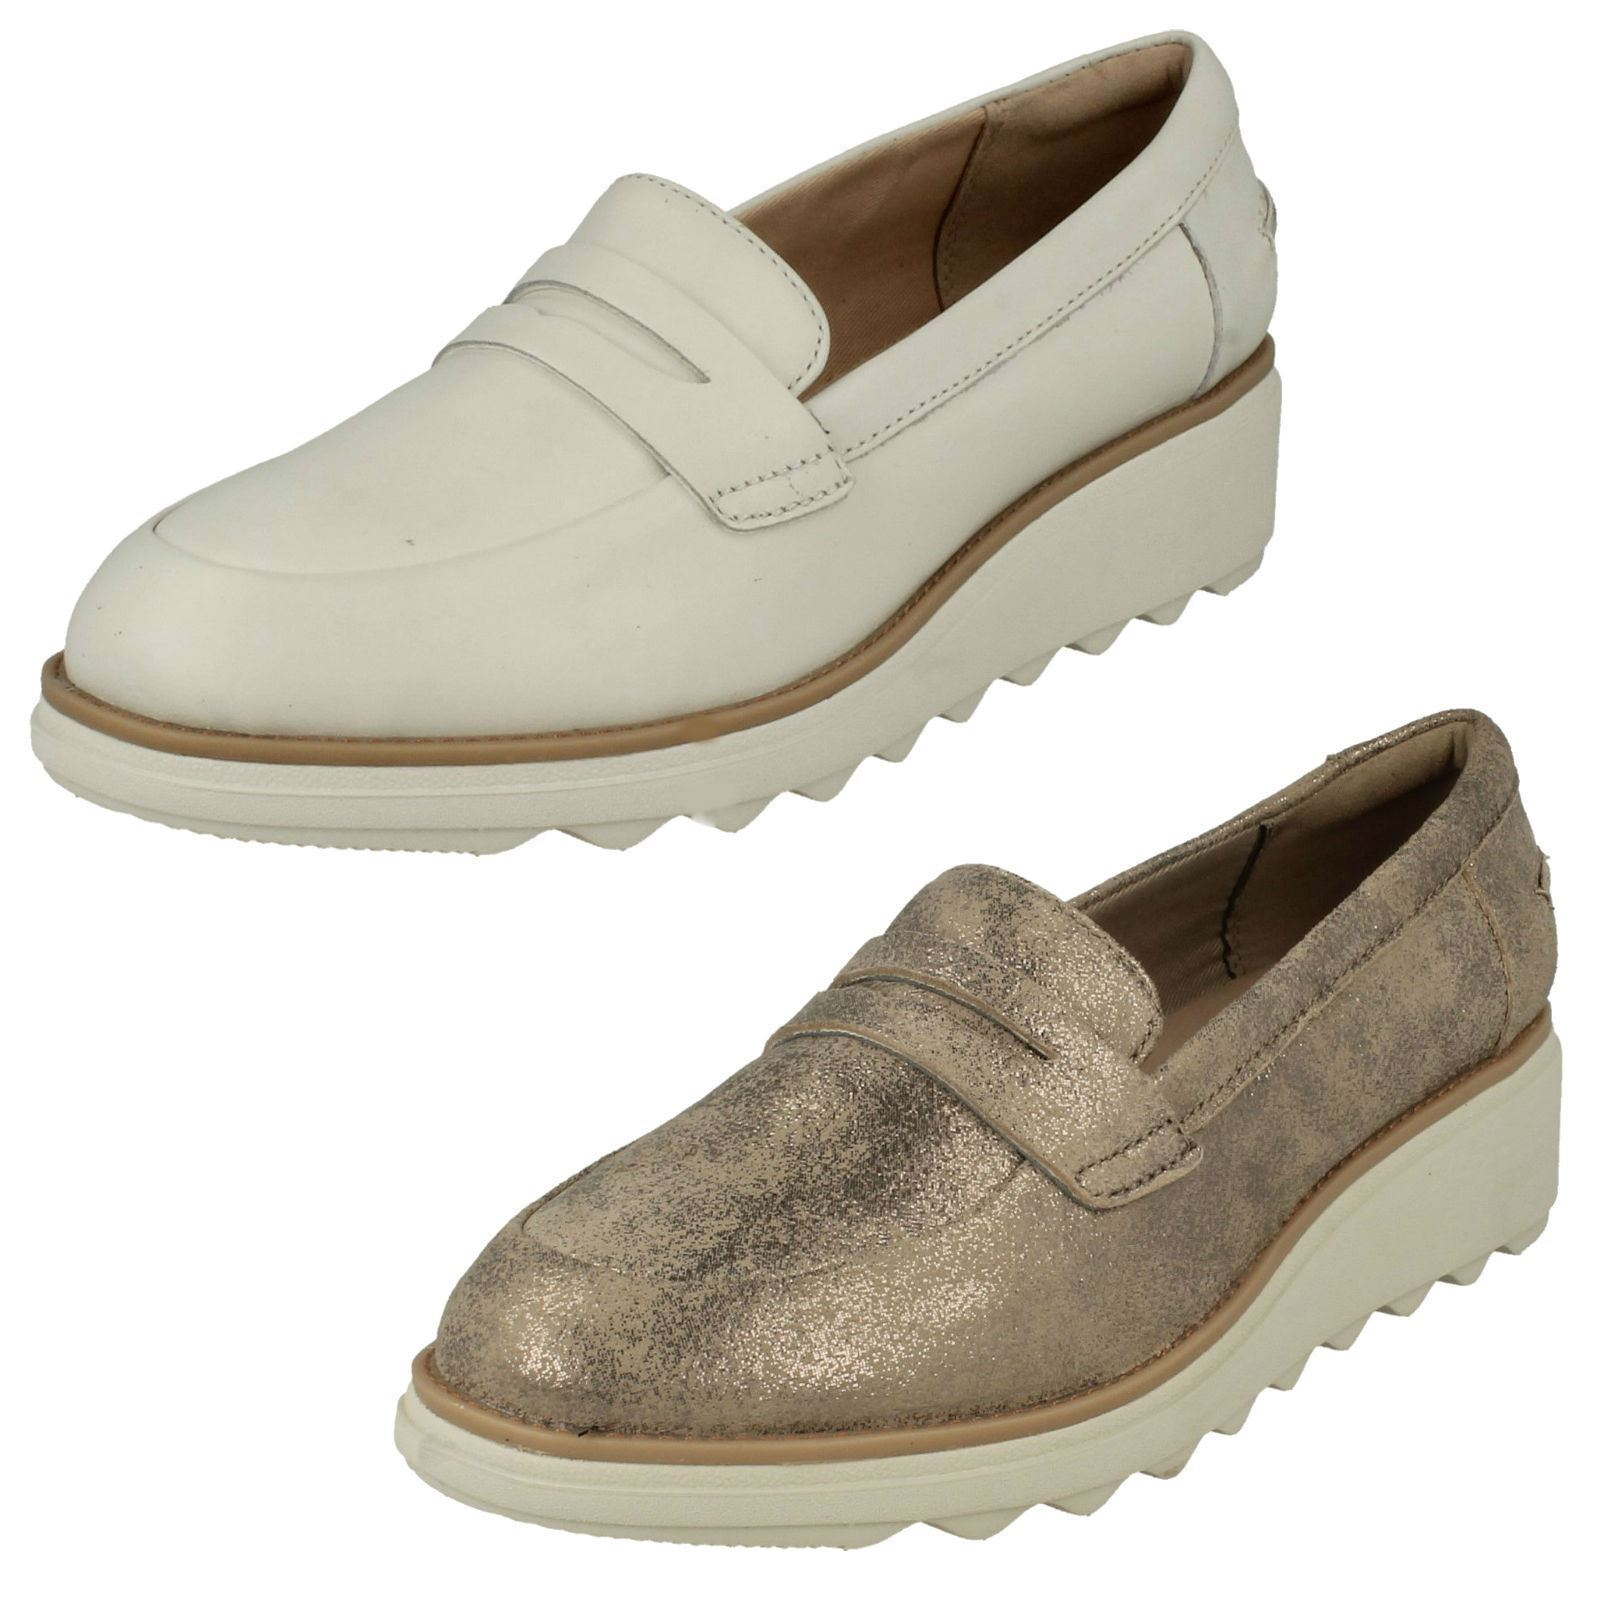 Sandali Donna Clarks Casual Mocassini Scarpe Zeppa-Sharon Ranch